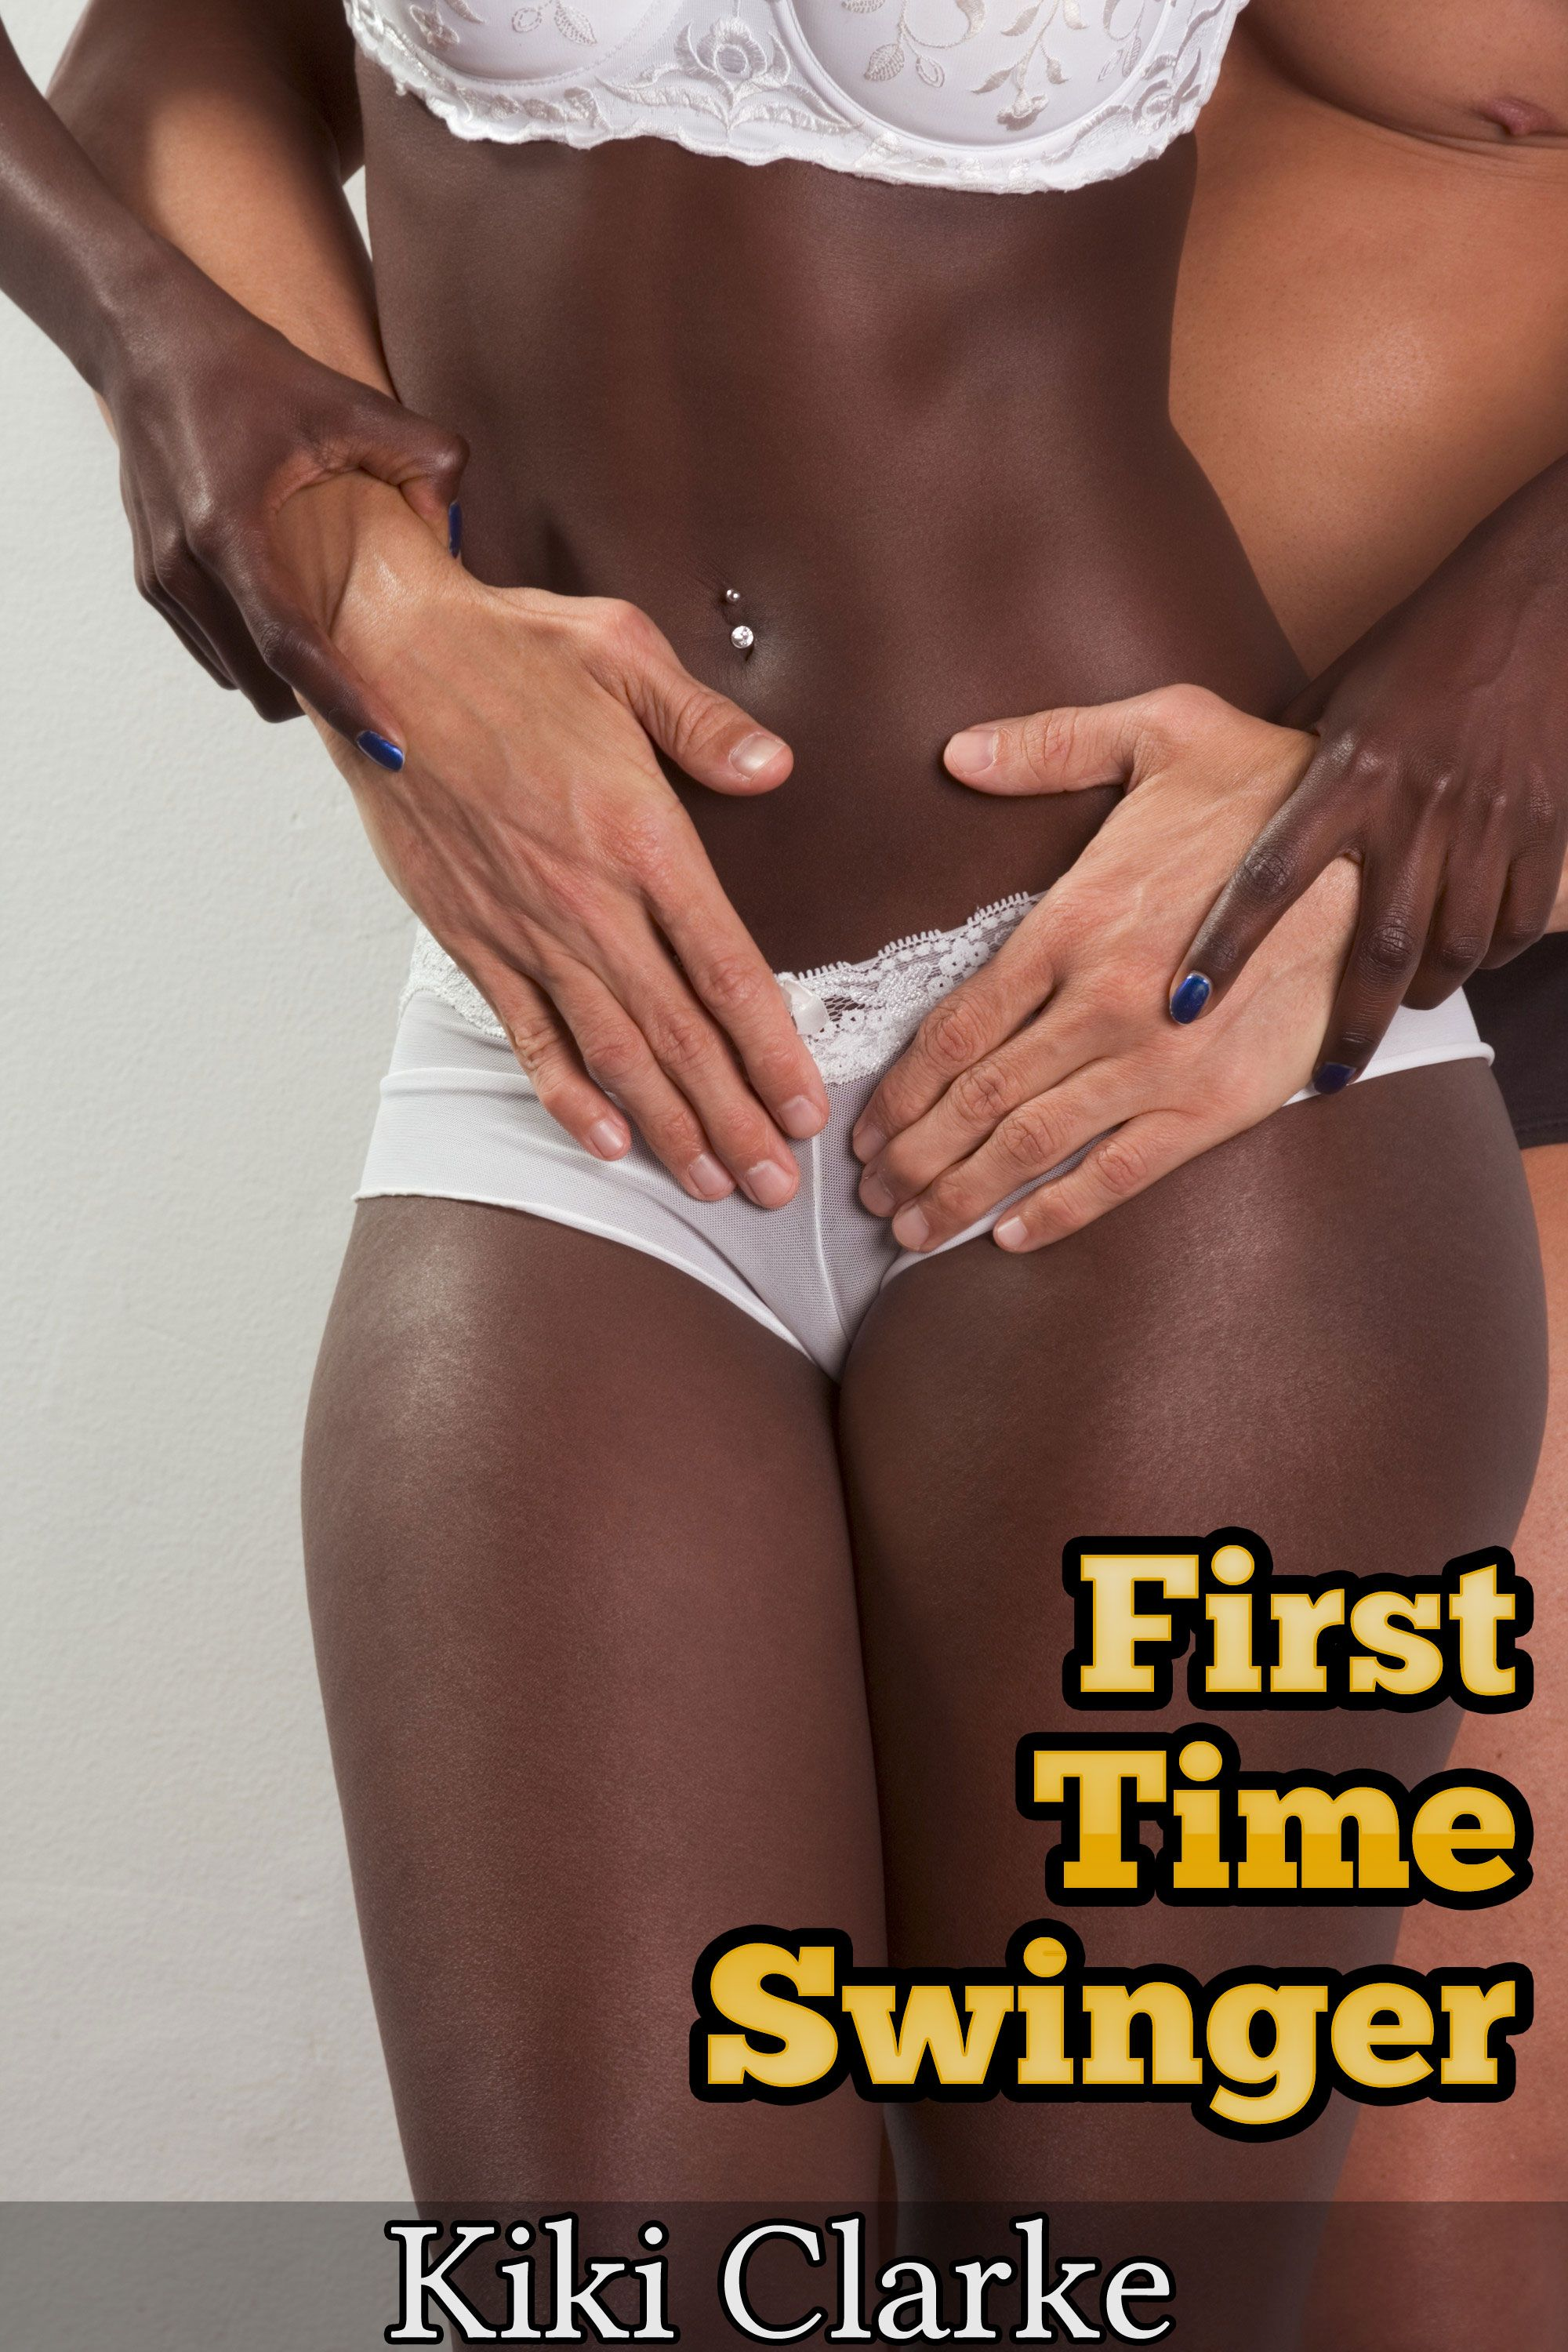 Authoritative first time swinger sex stories